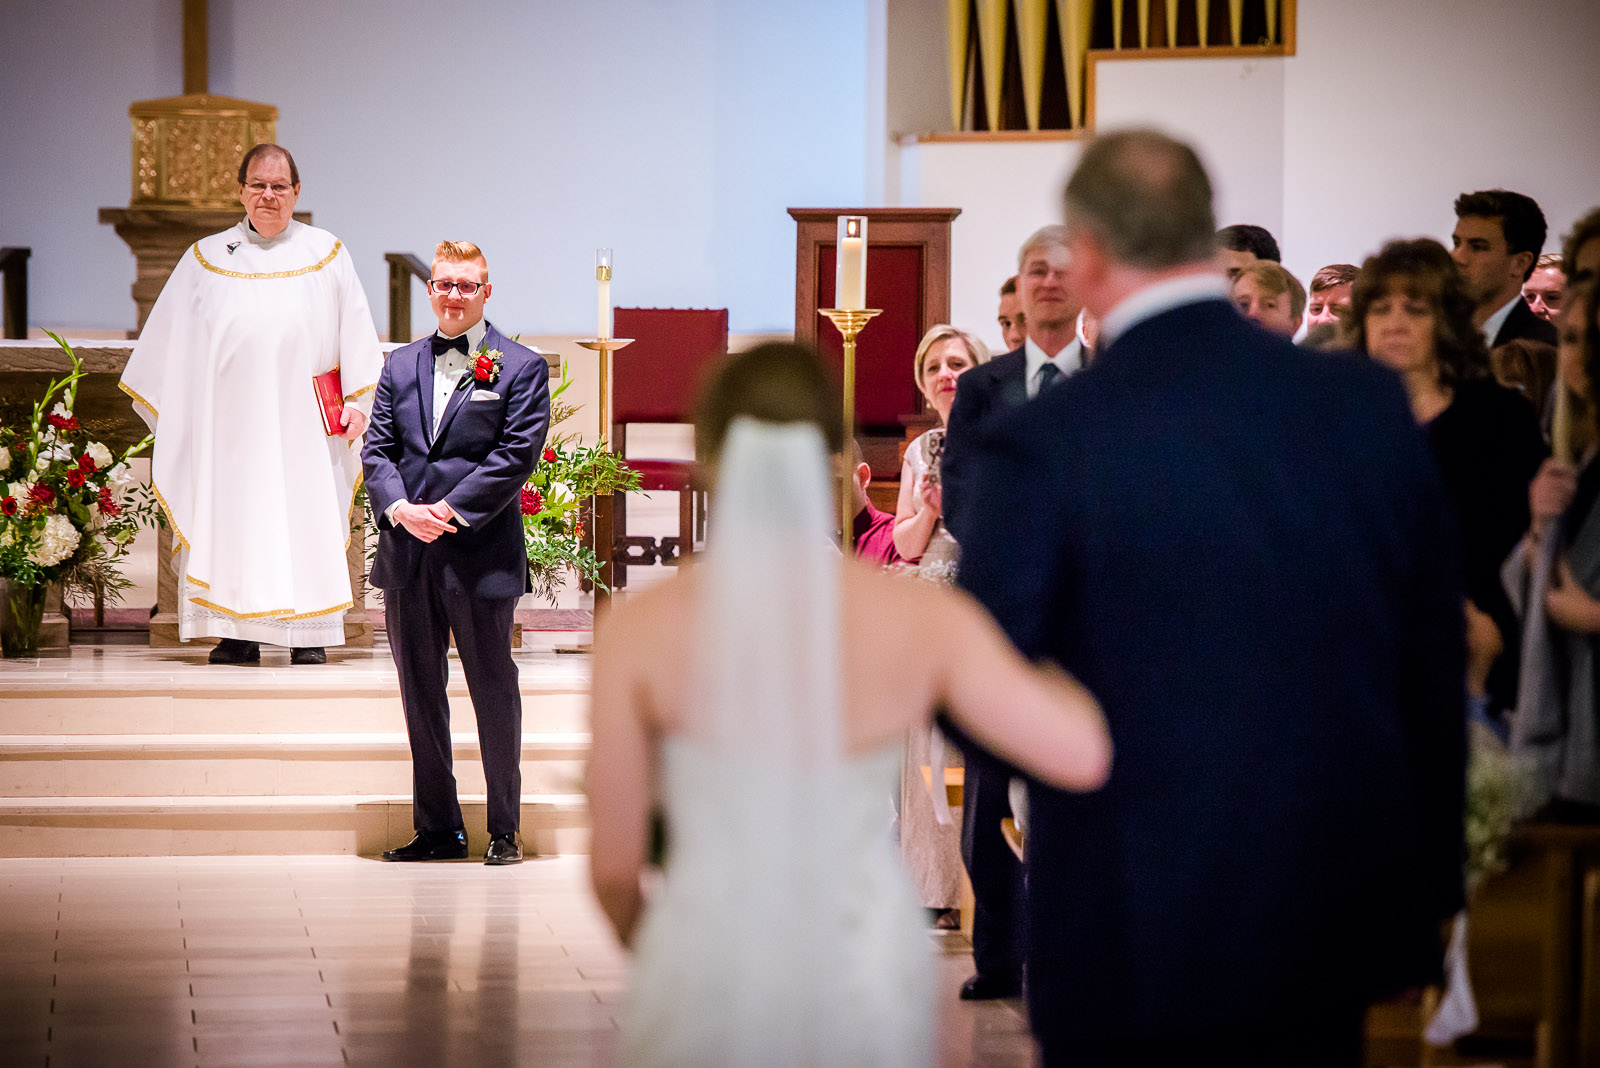 Eric_and_Christy_Photography_Blog_Wedding_Erica_Mike-11